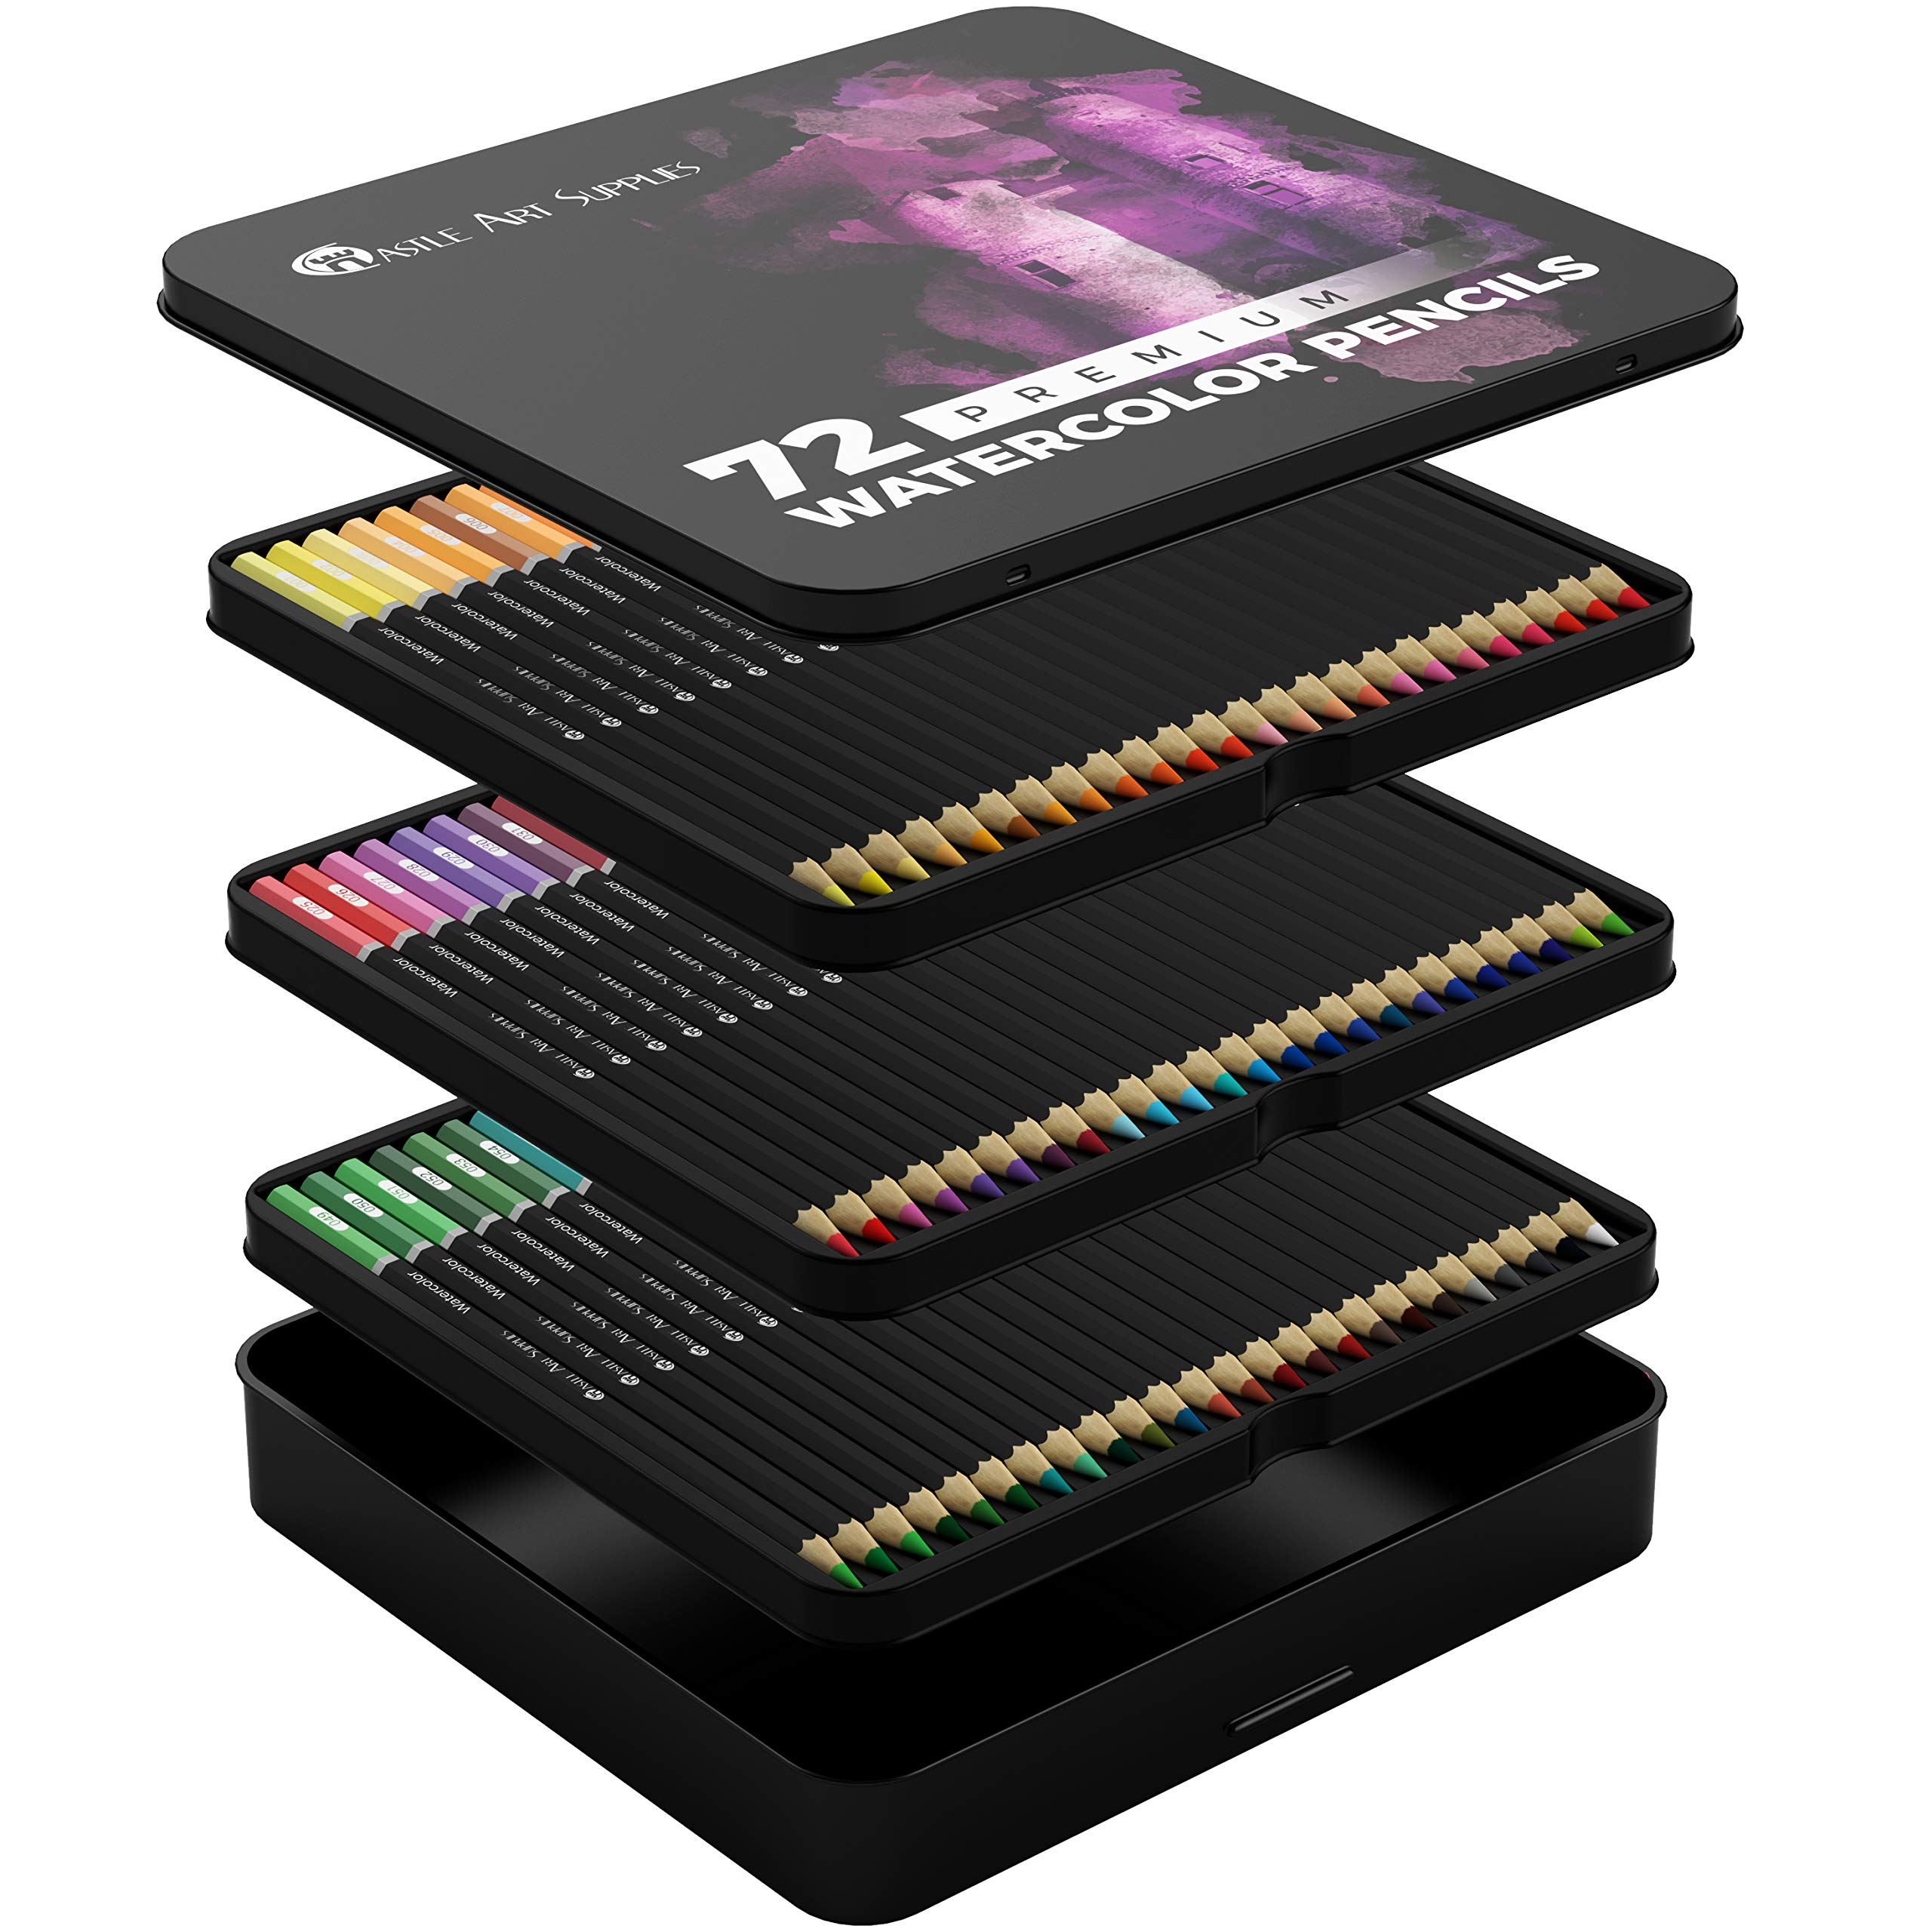 Castle Art Supplies 72 Watercolor Pencils Set for Adults and Professionals - Premium Artist Lead with Vibrant Colors and Beautiful Blending Effects with Water by Castle Art Supplies